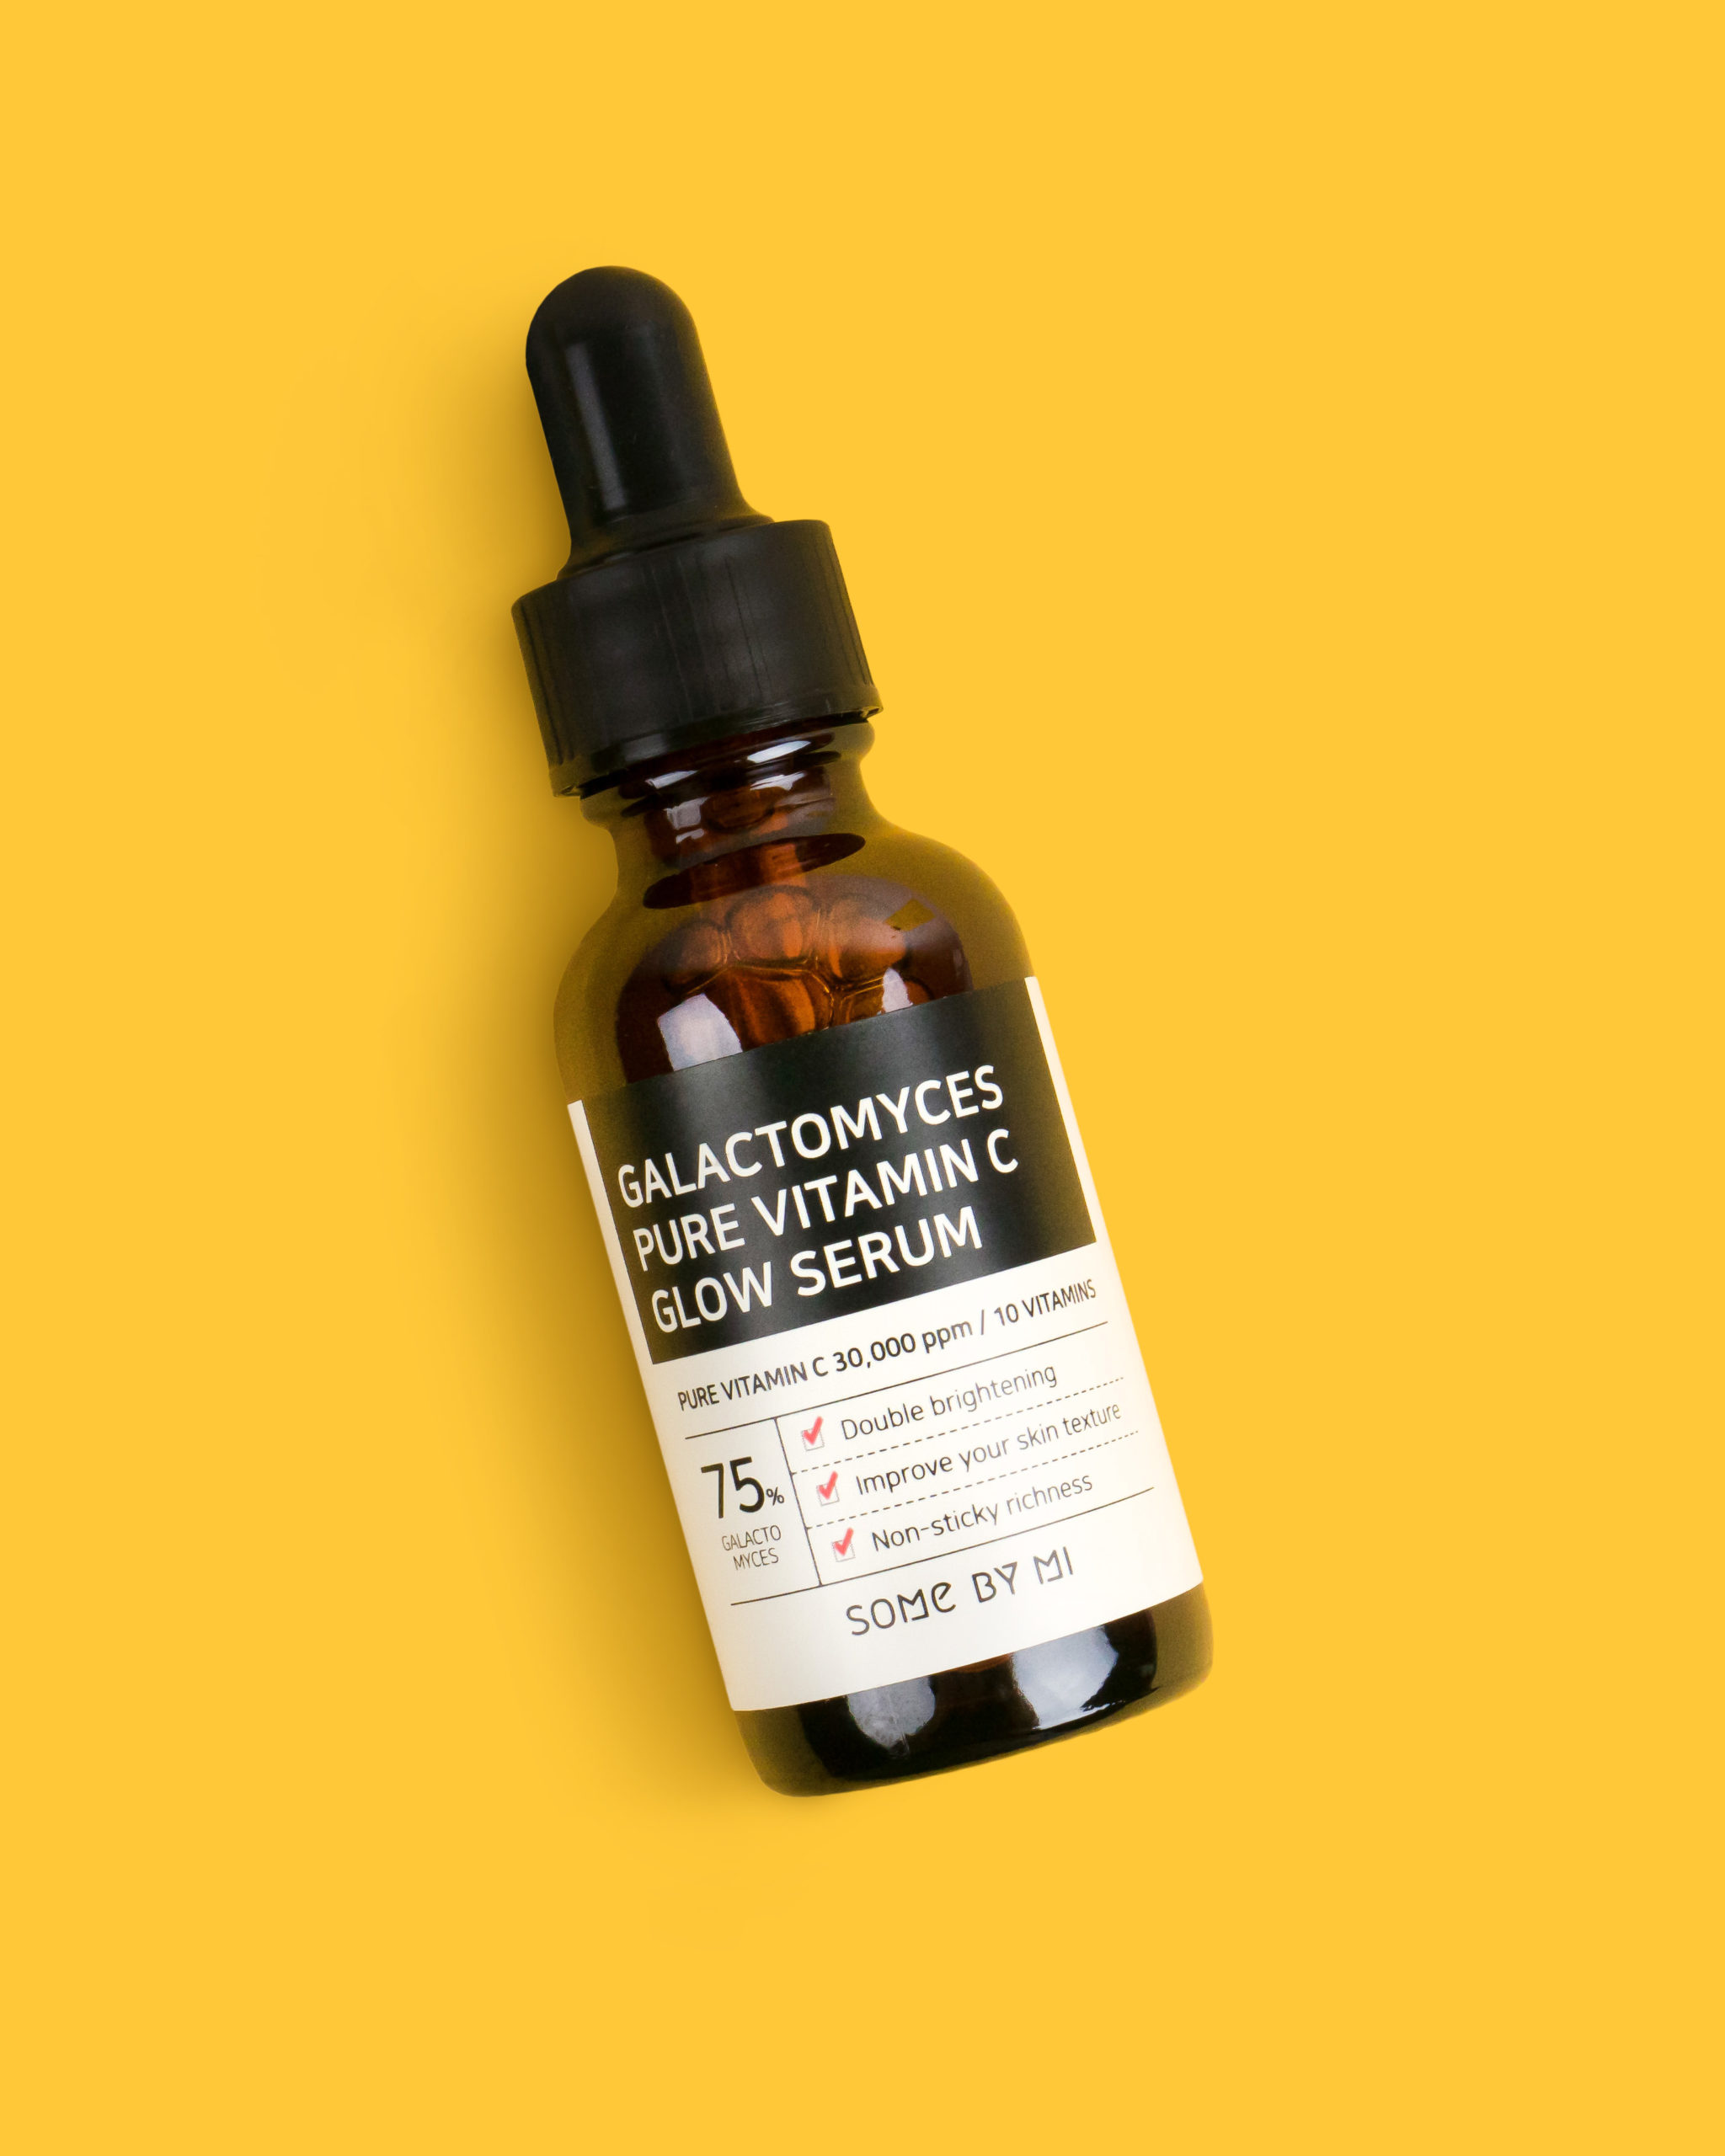 Some By Mi Galactomyces Vitamin C Serum